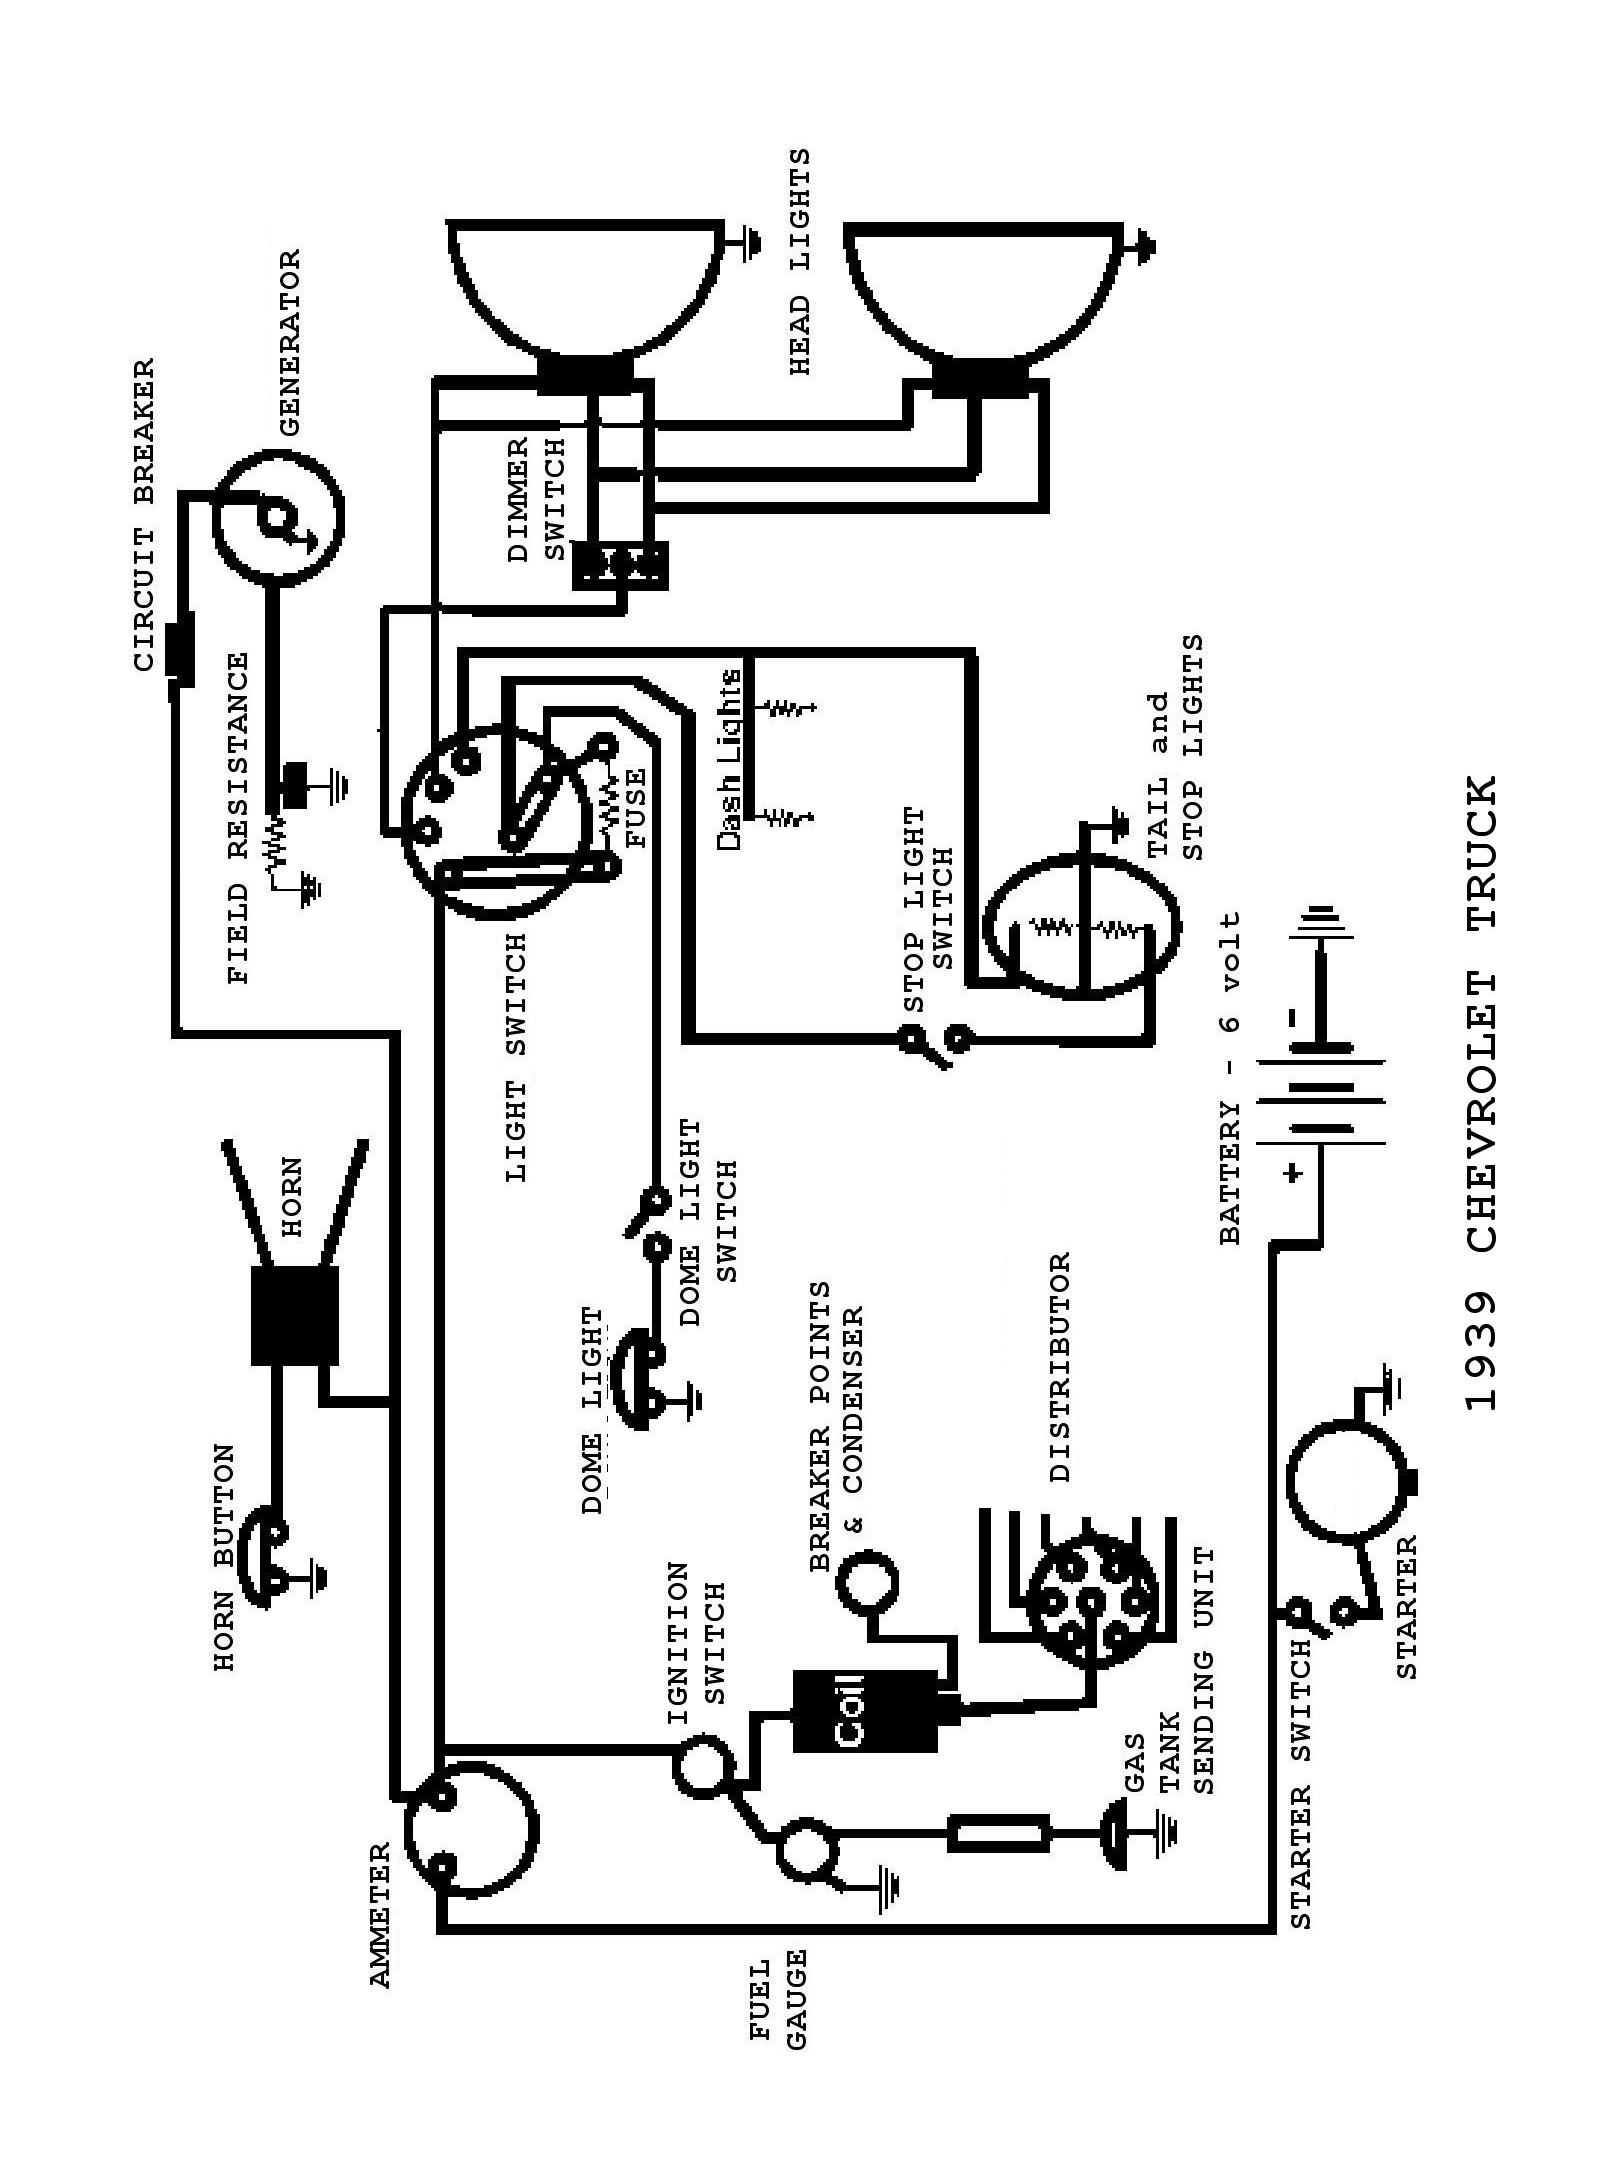 39truck 1931 chevrolet wiring diagram wiring diagram simonand 66 Chevy Headlight Switch Wiring Diagram at aneh.co